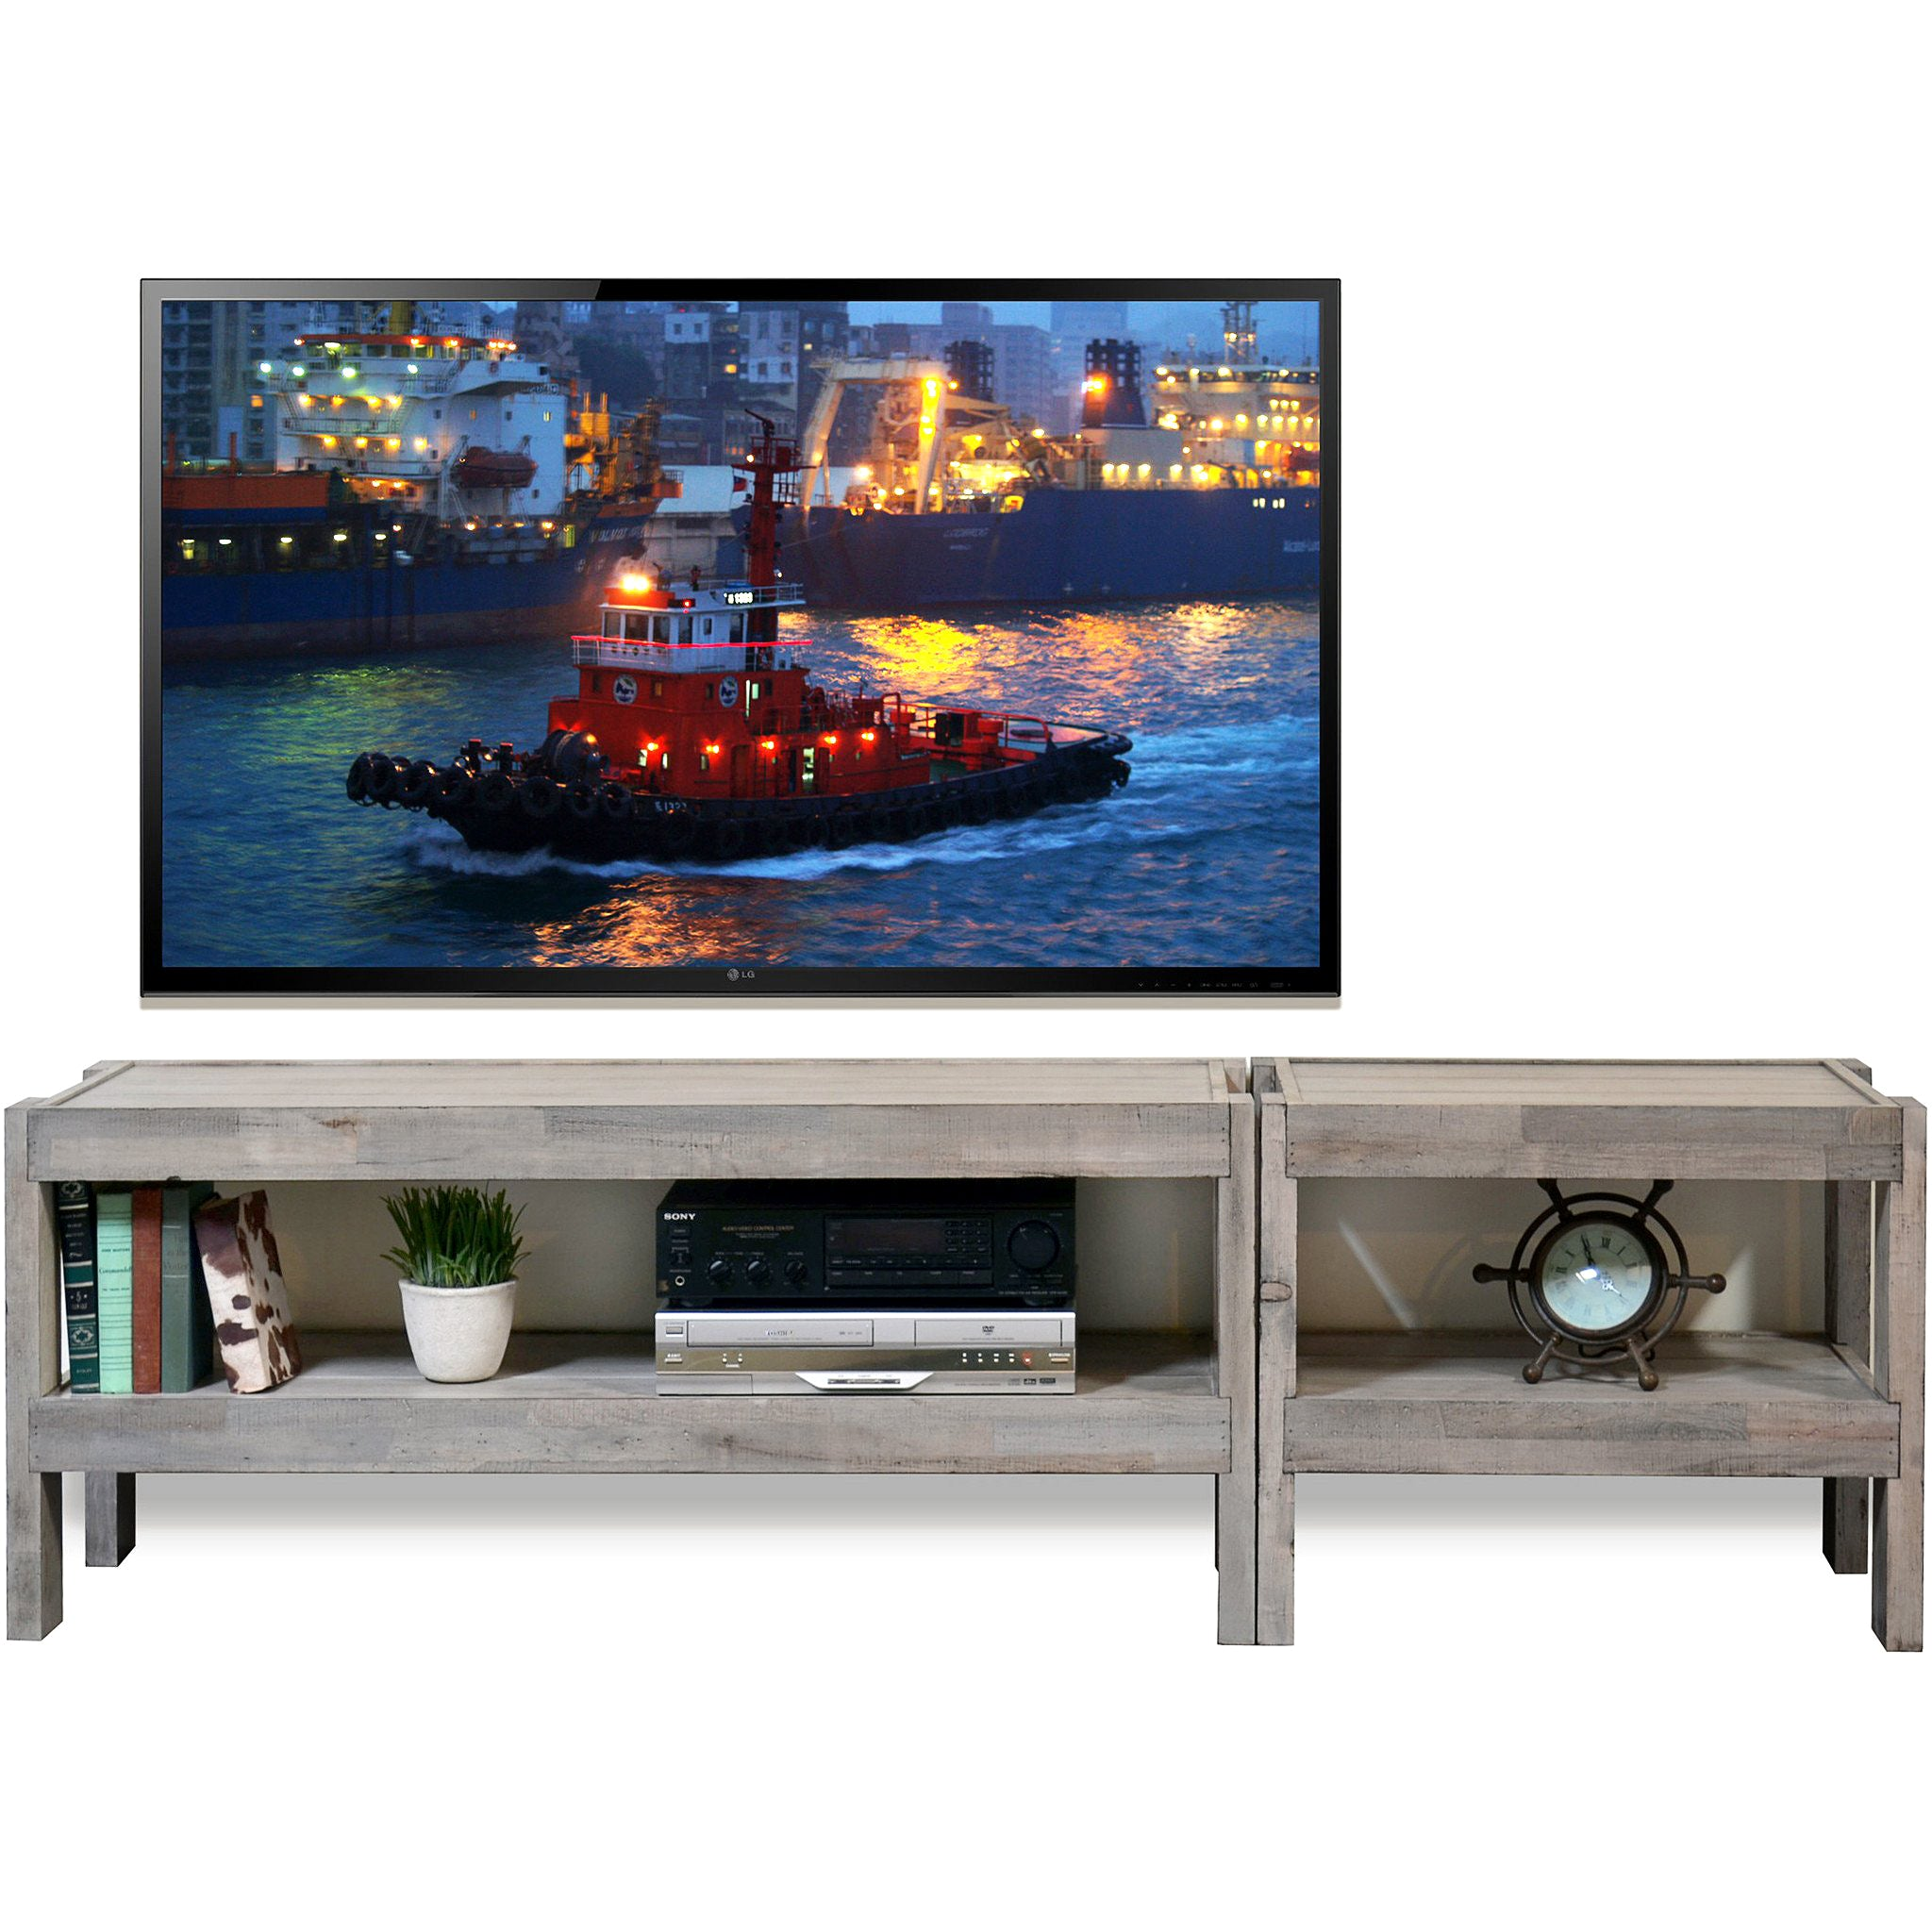 Gray Beach House Coastal TV Stand Entertainment Center - presEARTH Driftwood 2 Piece  sc 1 st  Woodwaves & presEARTH - Reclaimed Rustic Wood u0026 Coastal Style Furniture - Woodwaves